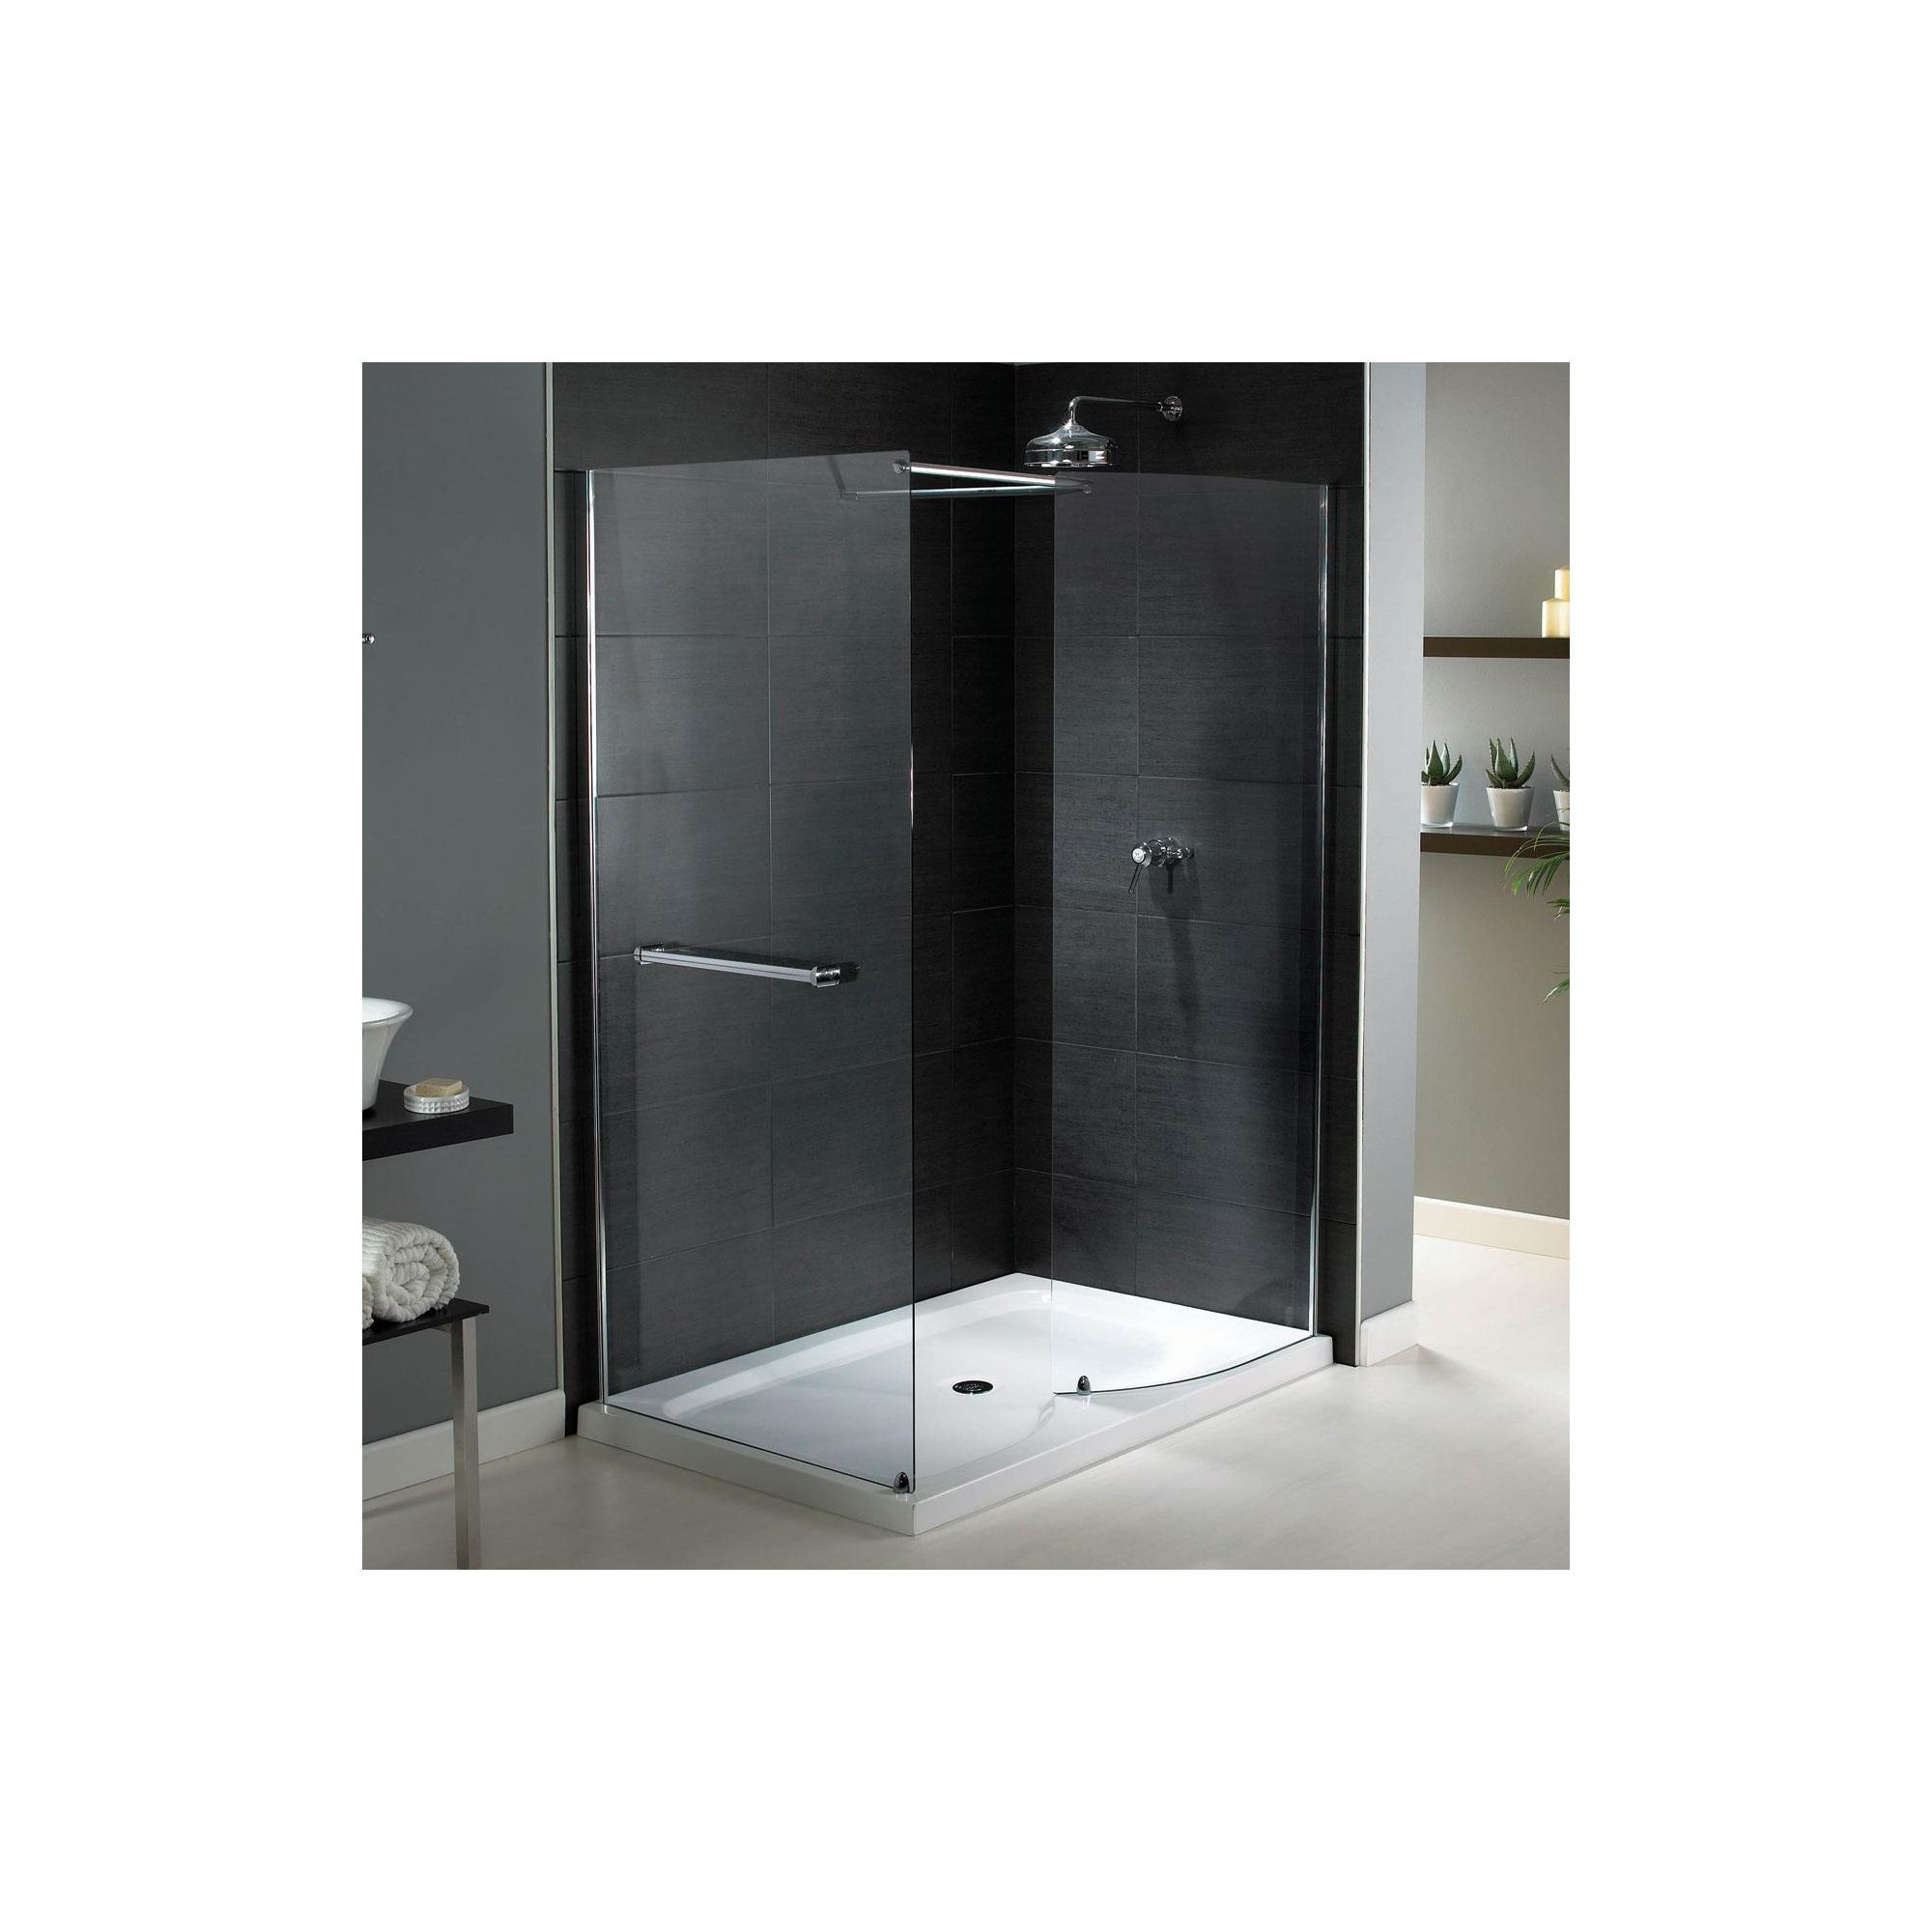 Aqualux Shine Walk-In Shower Enclosure, 1400mm x 800mm, 6mm Glass, Low Profile Tray at Tesco Direct